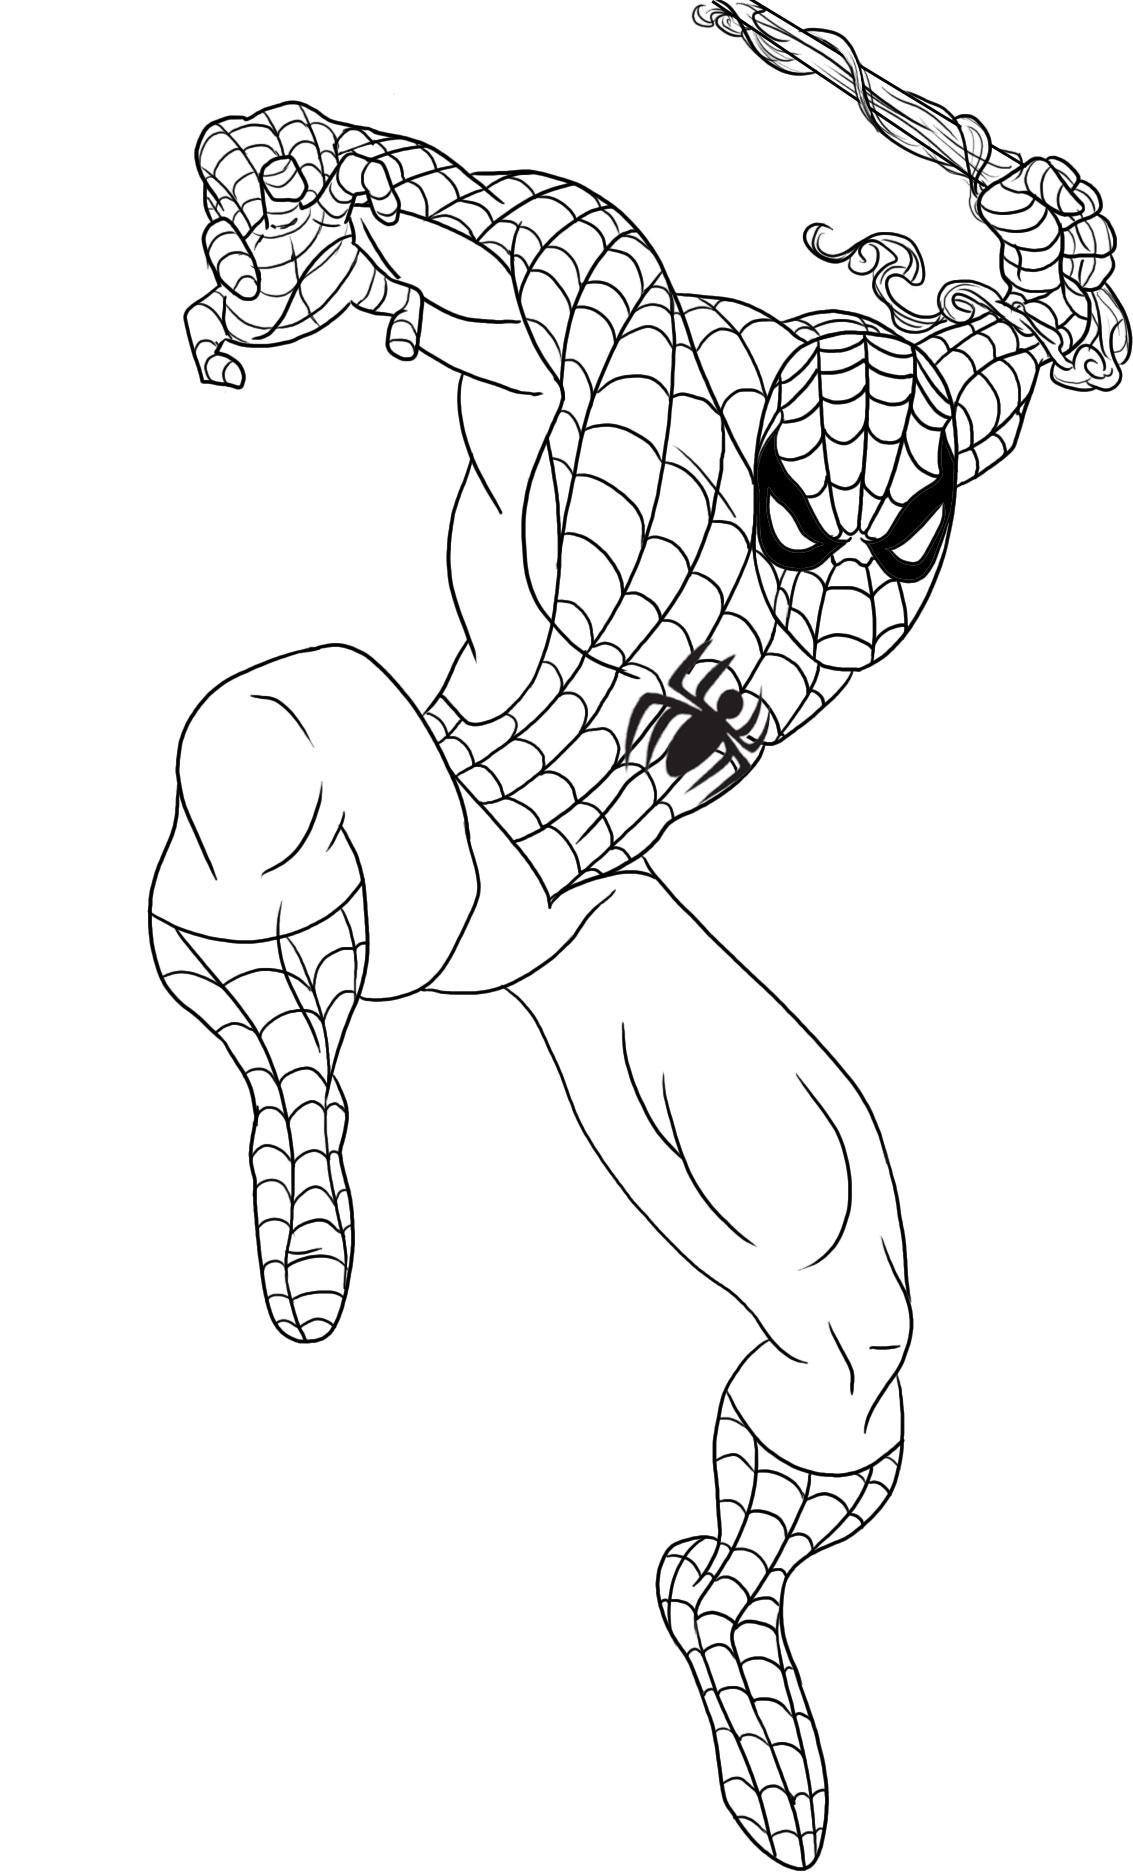 Spiderman Comic Drawing at GetDrawings.com | Free for personal use ...